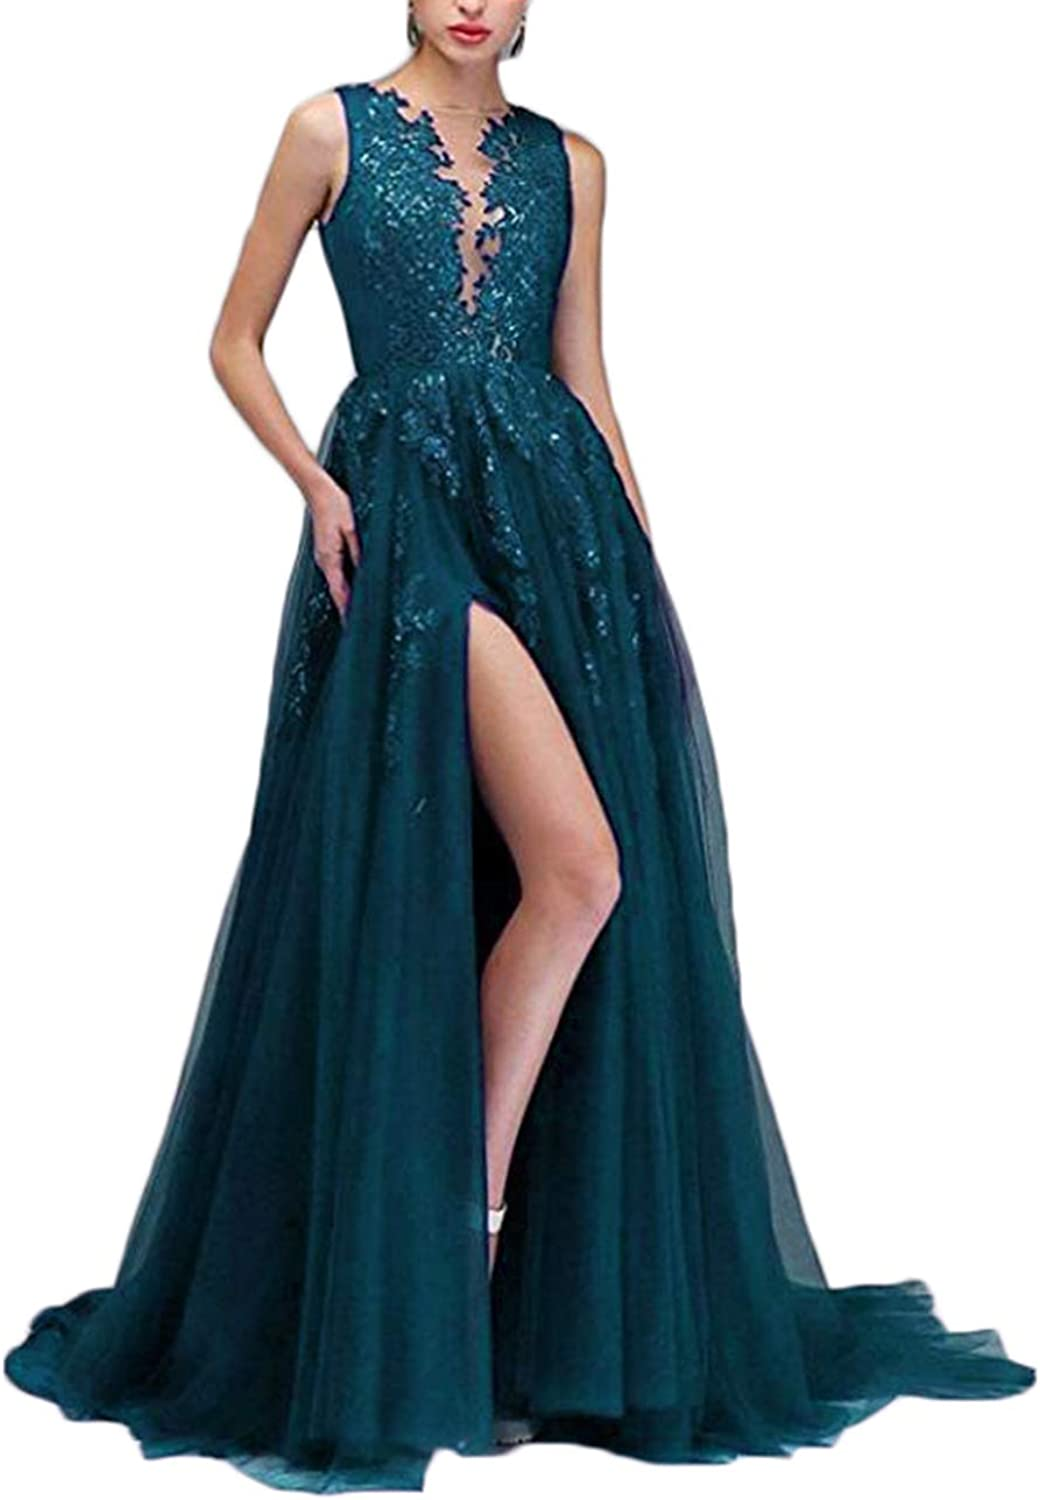 Alilith.Z Sexy Side Slit Prom Dresses 2019 Long Sequins Lace Appliques Party Gowns Formal Dresses for Women Evening Ball